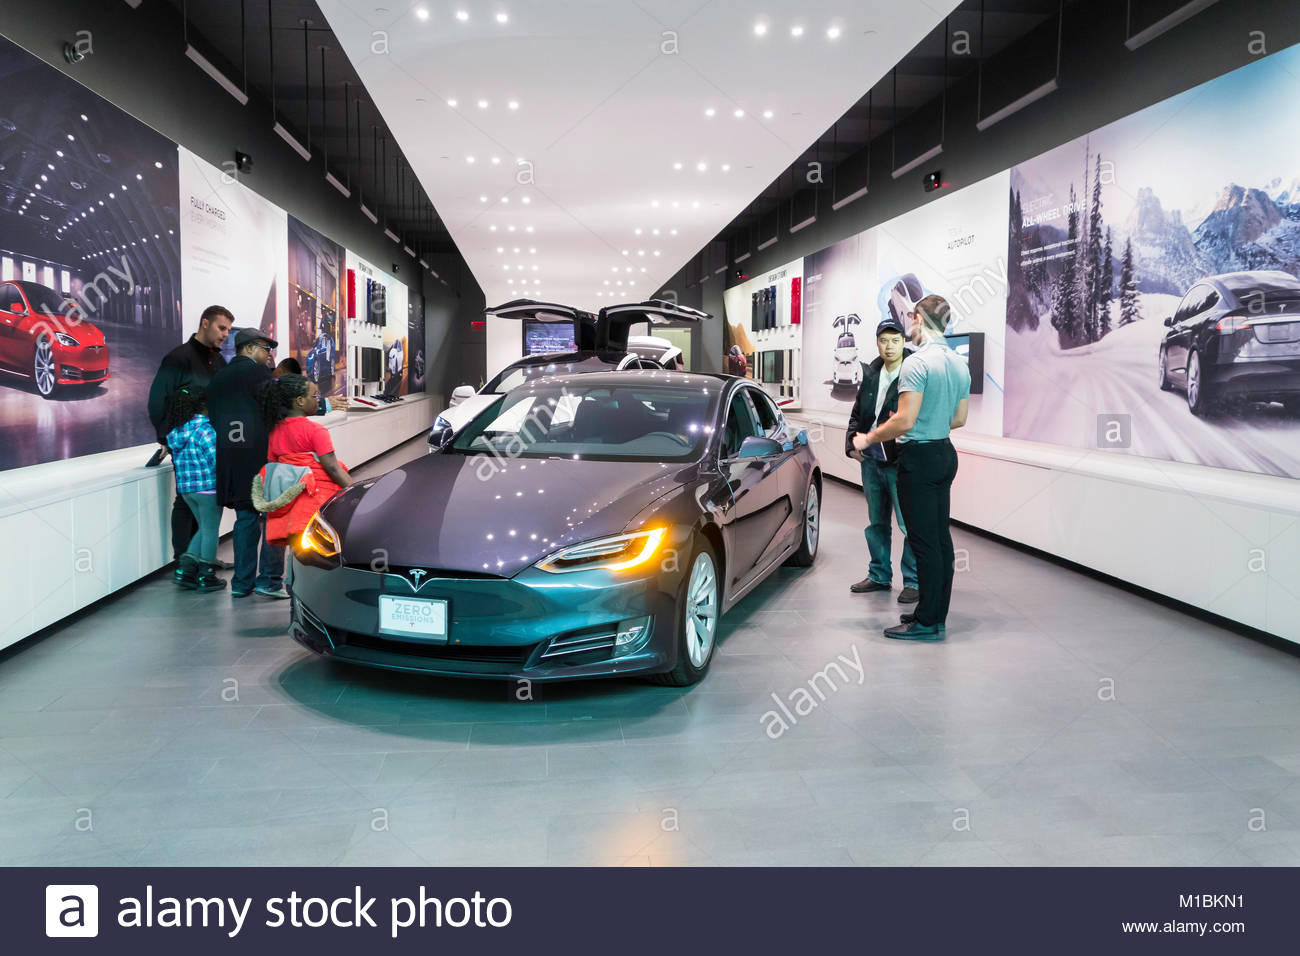 Tesla electric vehicle store or gallery at Yorkdale Shopping Center a major shopping mall in Toronto Ontario Canada - Stock Image